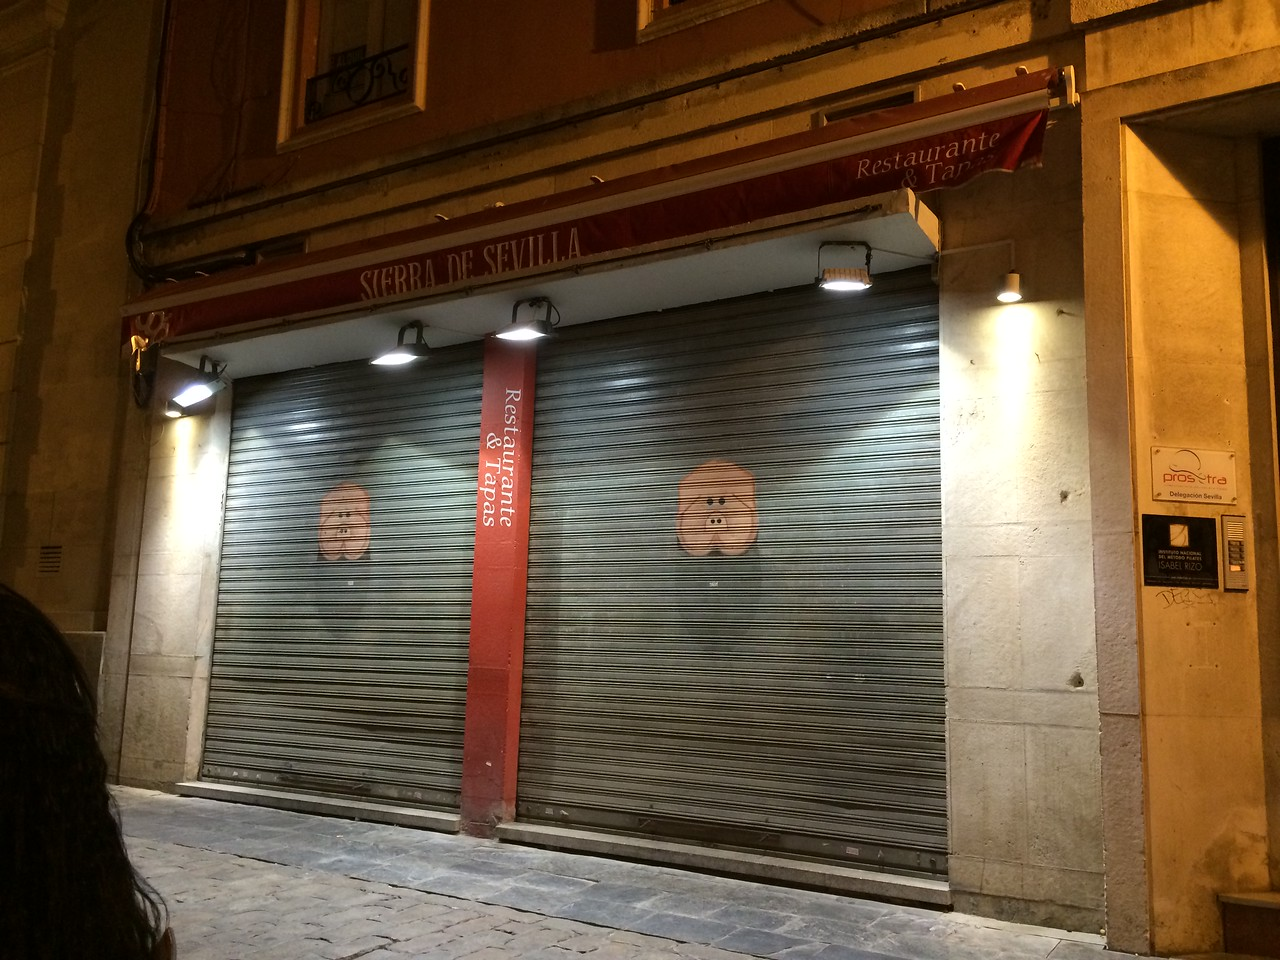 The rolling shutters for this restaurant is pulled down at closing at around midnight to 1am. Buenas noches or is it buenas dias?!